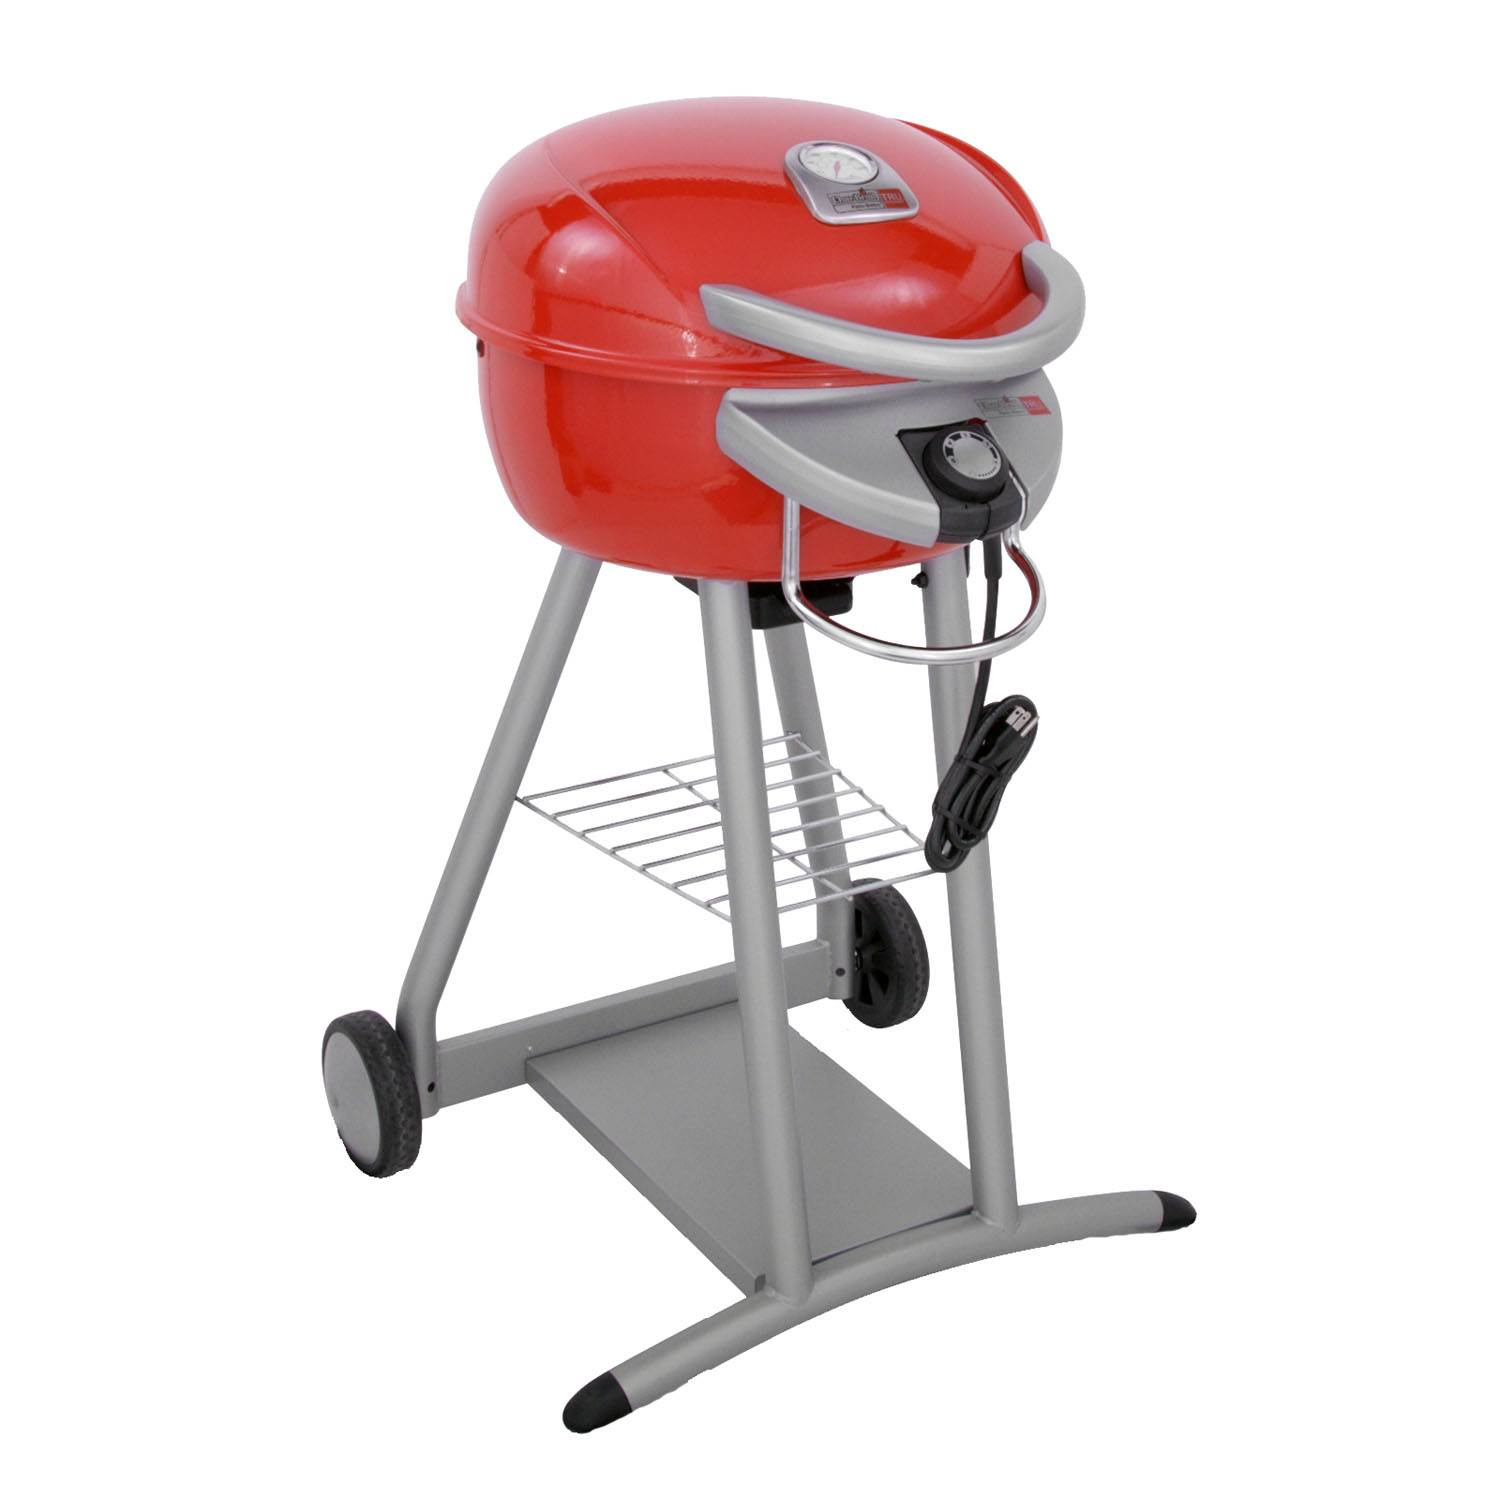 char broil patio bistro infrared 240 square inch electric grill red walmart com